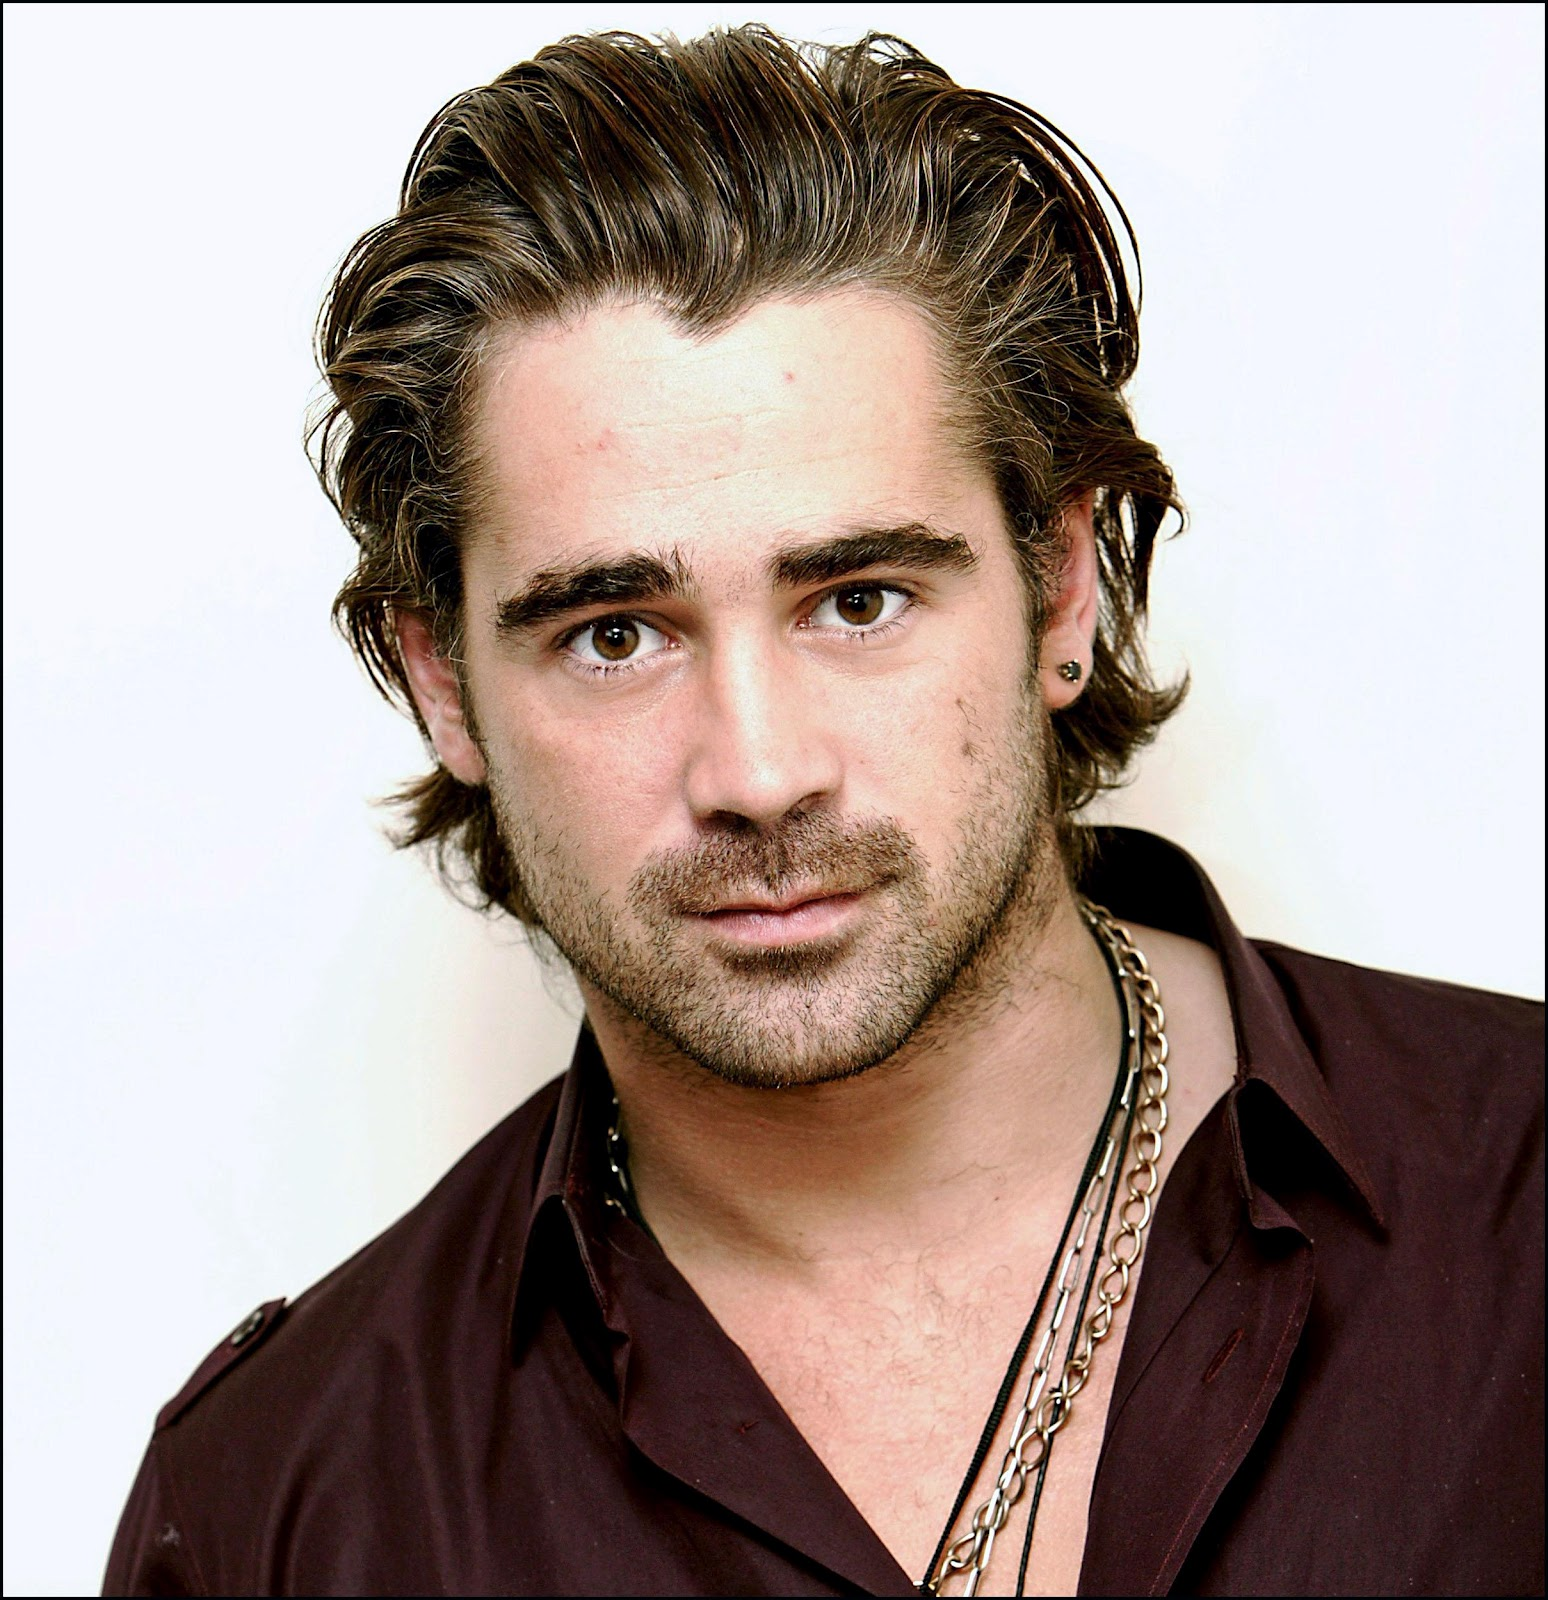 Colin farrell pussy licking